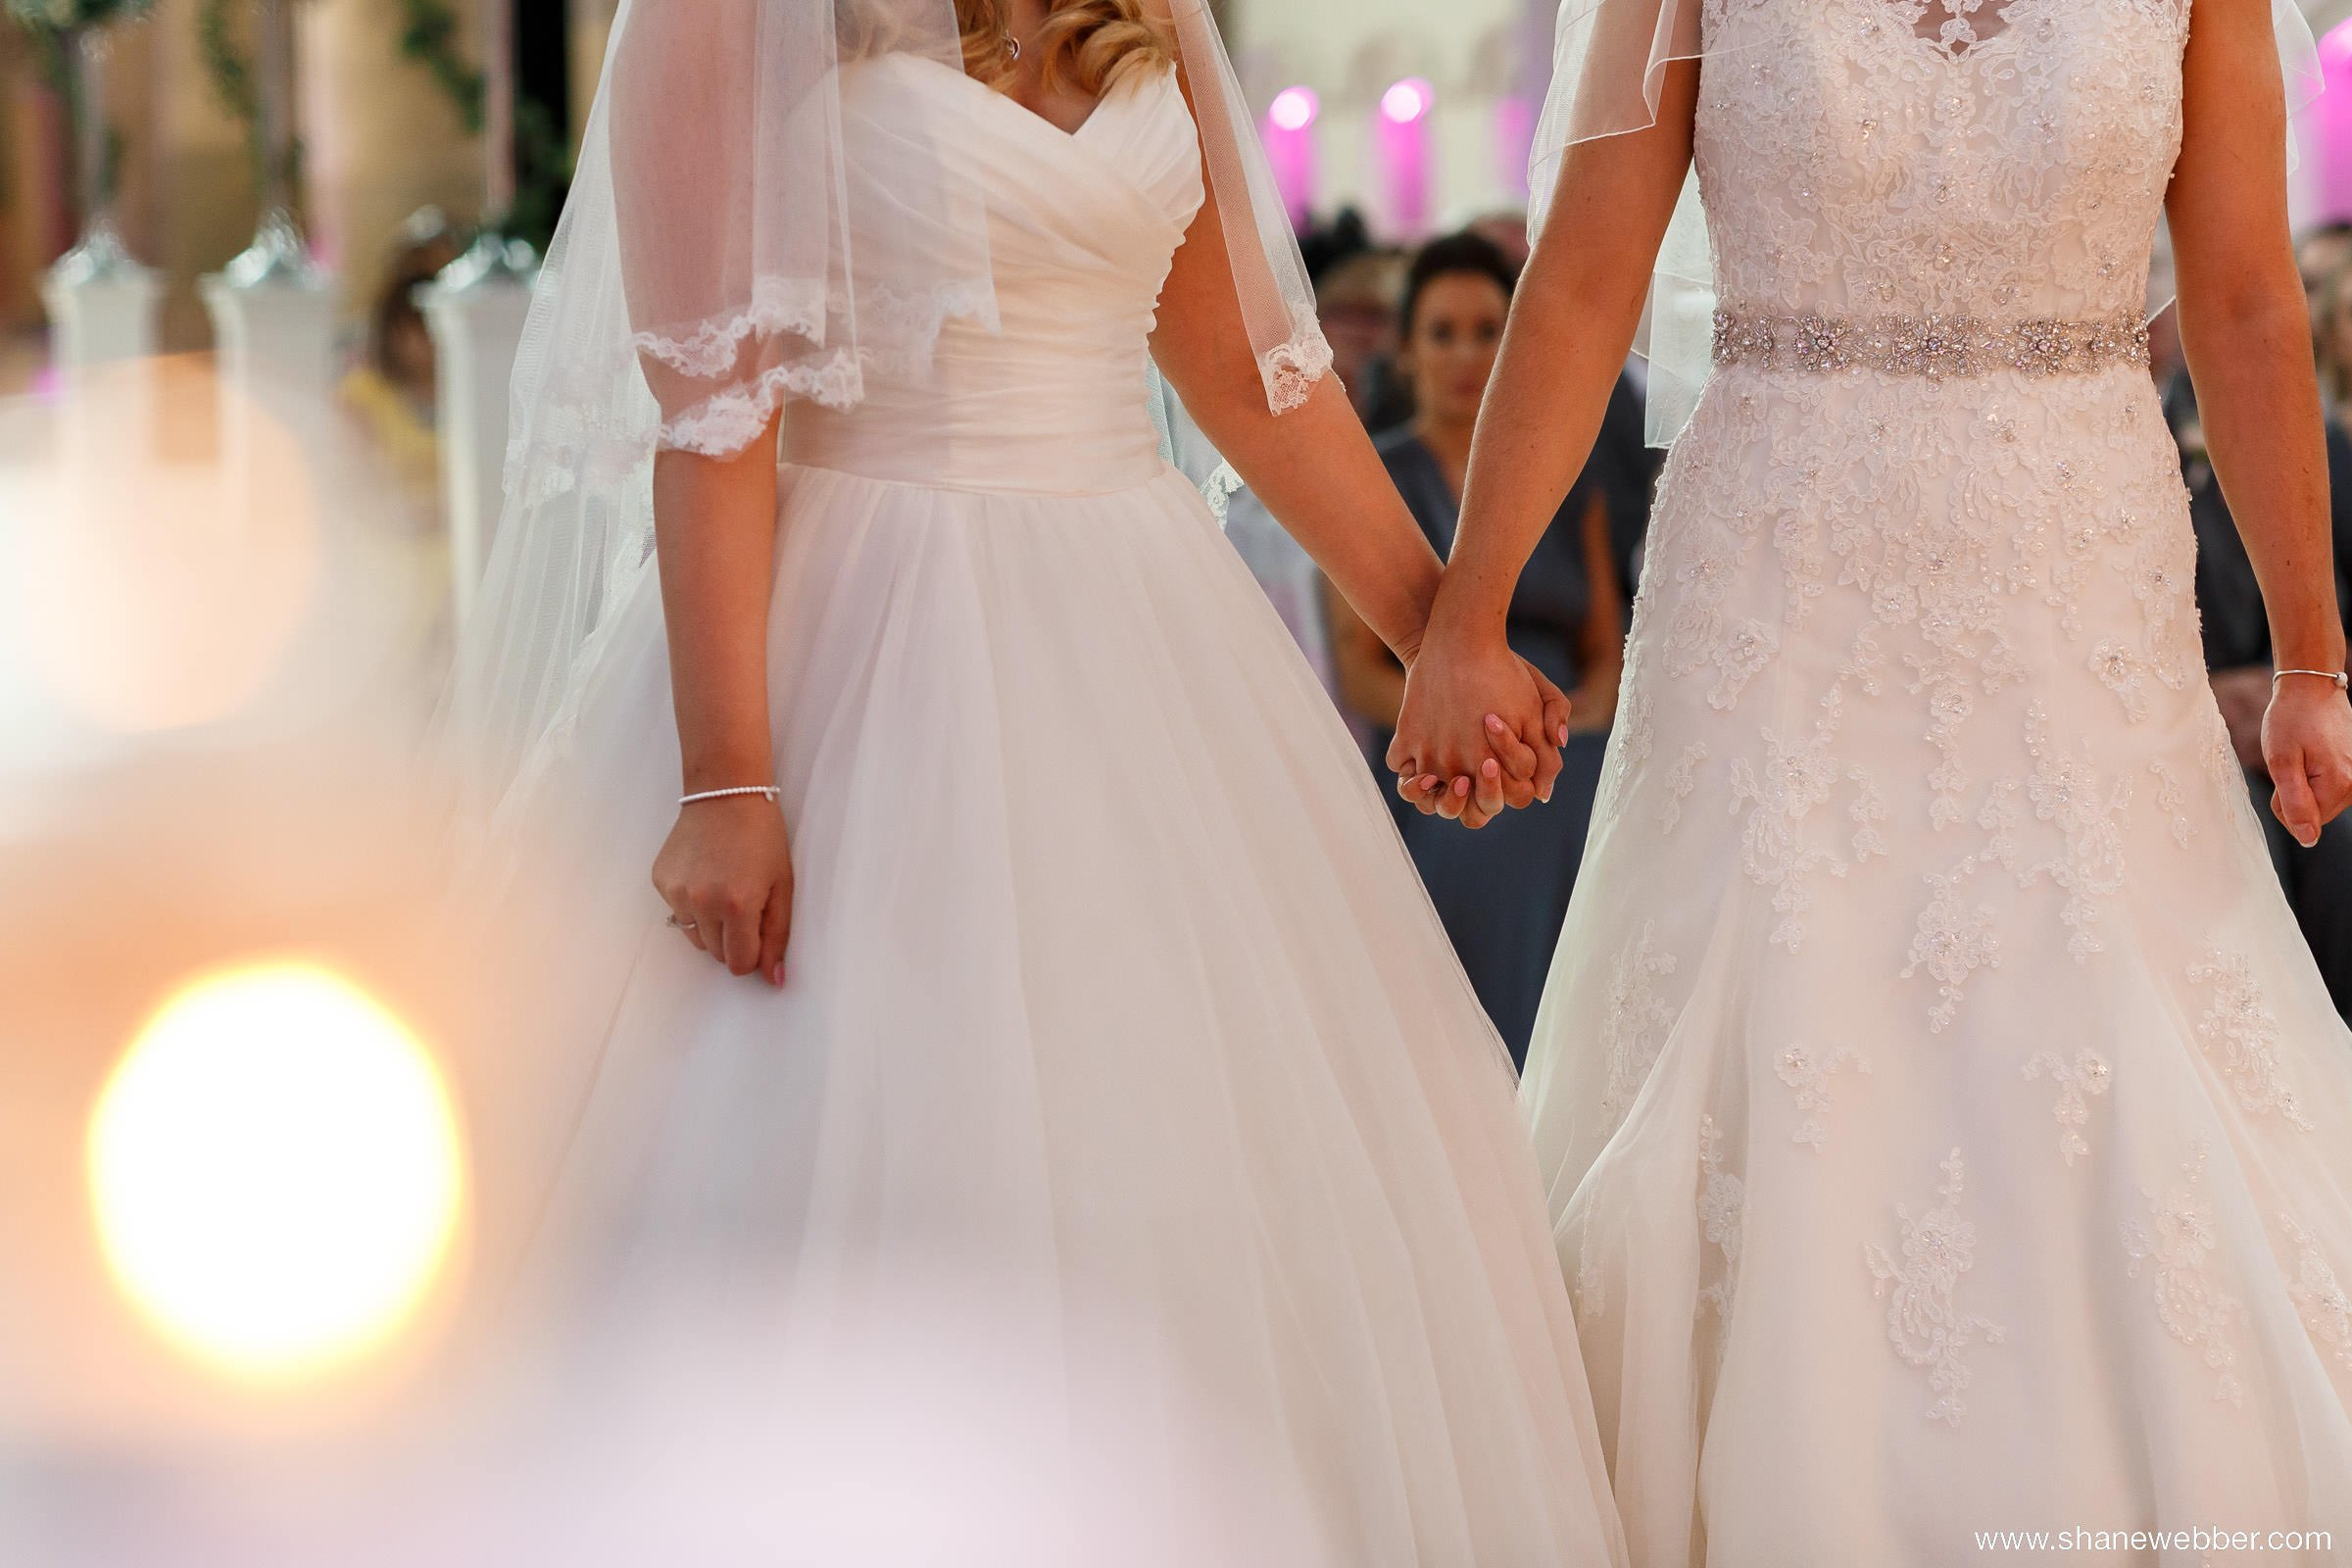 Two brides holding hands at wedding